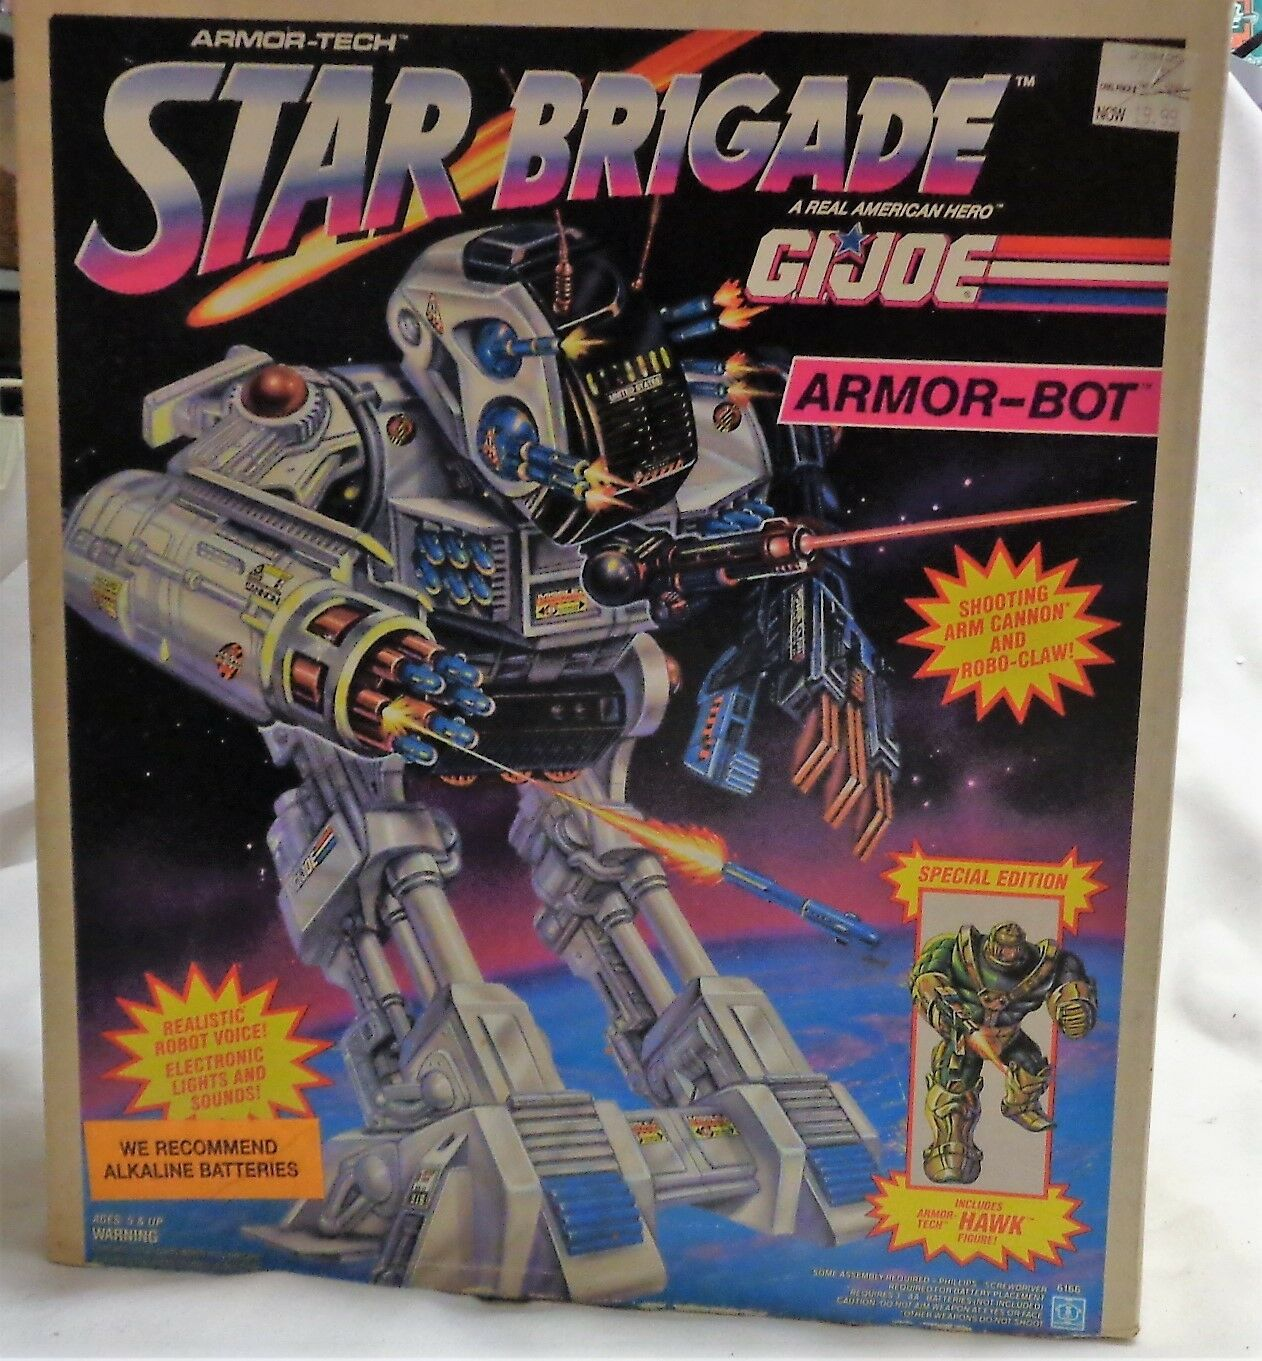 1993 Hasbro GI Joe Star Brigade Armor Bot Boxed Sealed MISB Hawk Figure FREESHIP